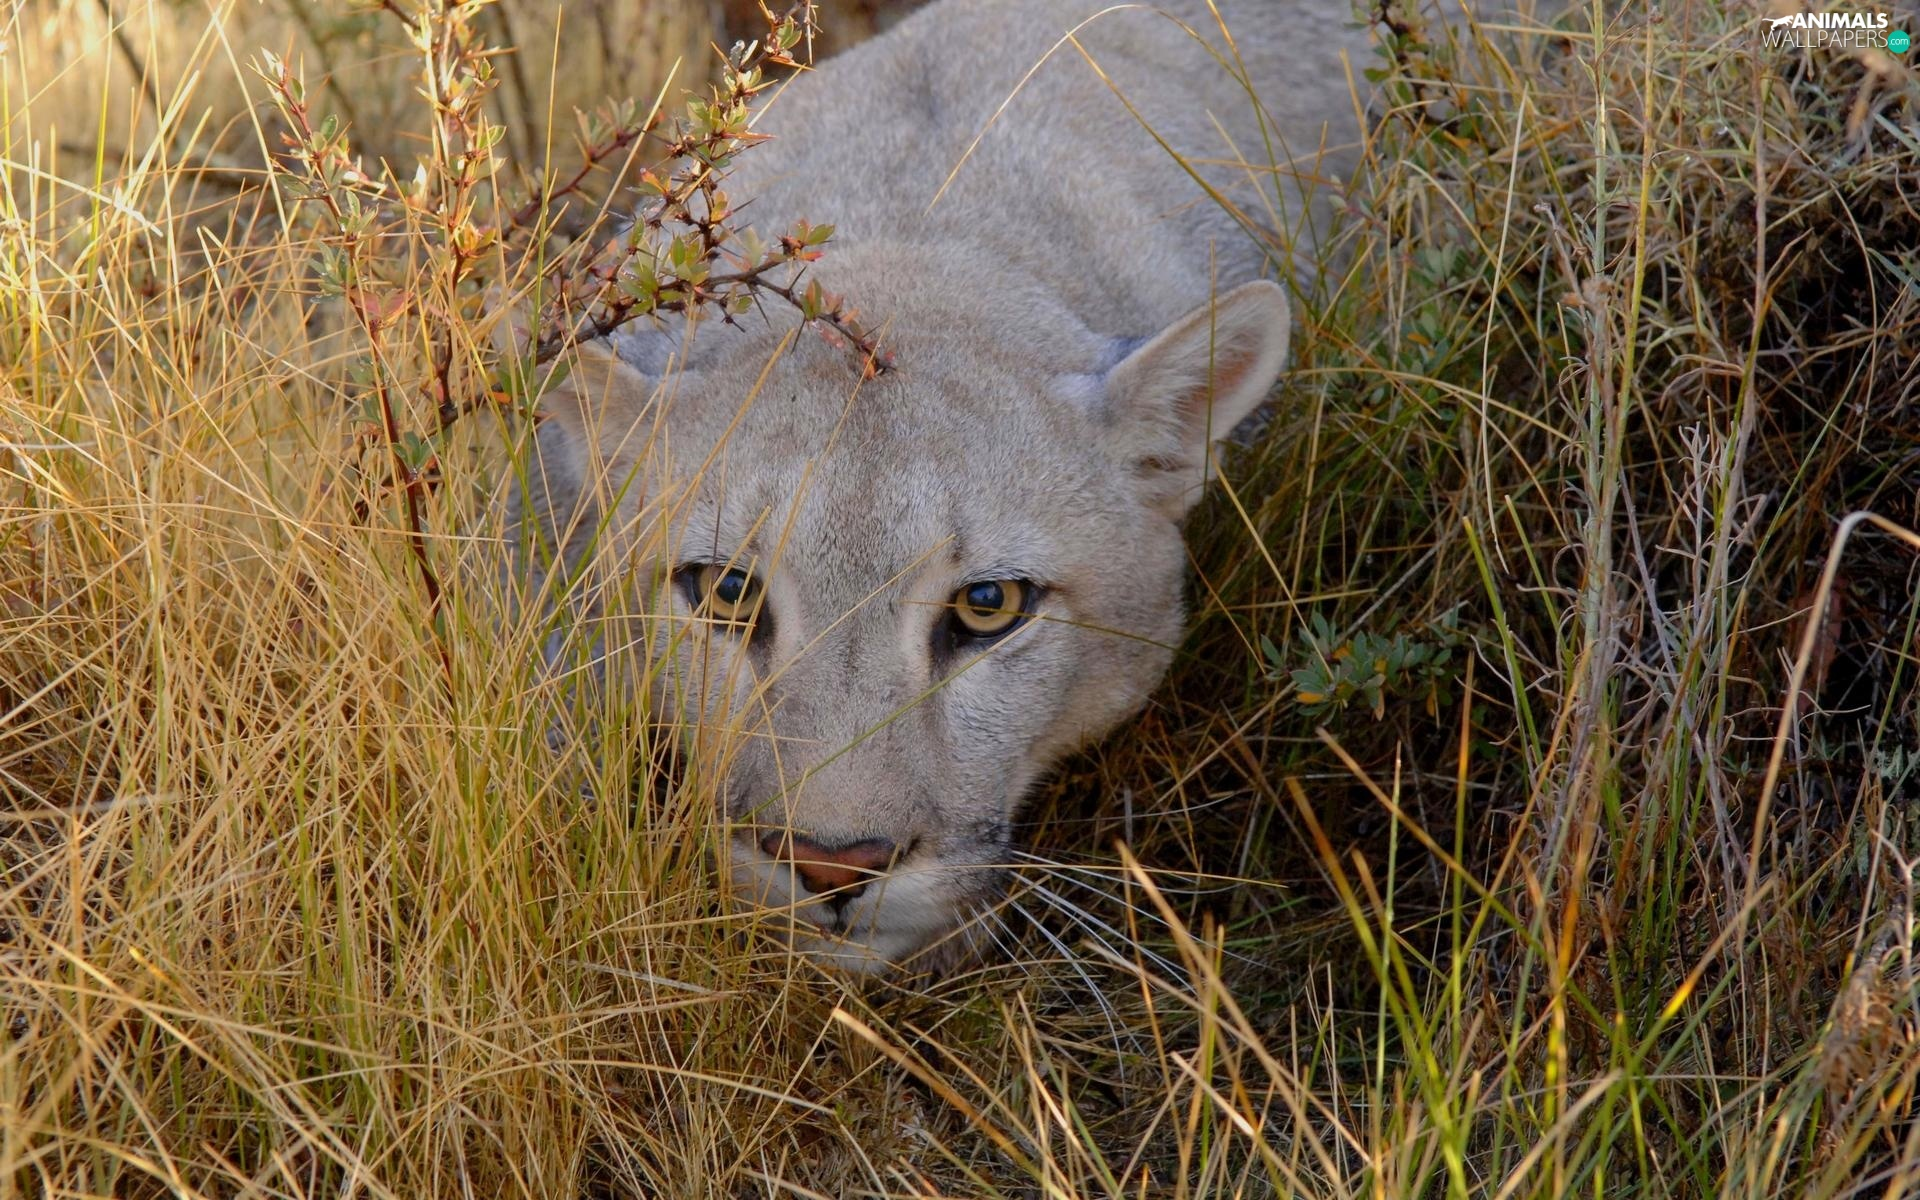 grass, lurking, cougar